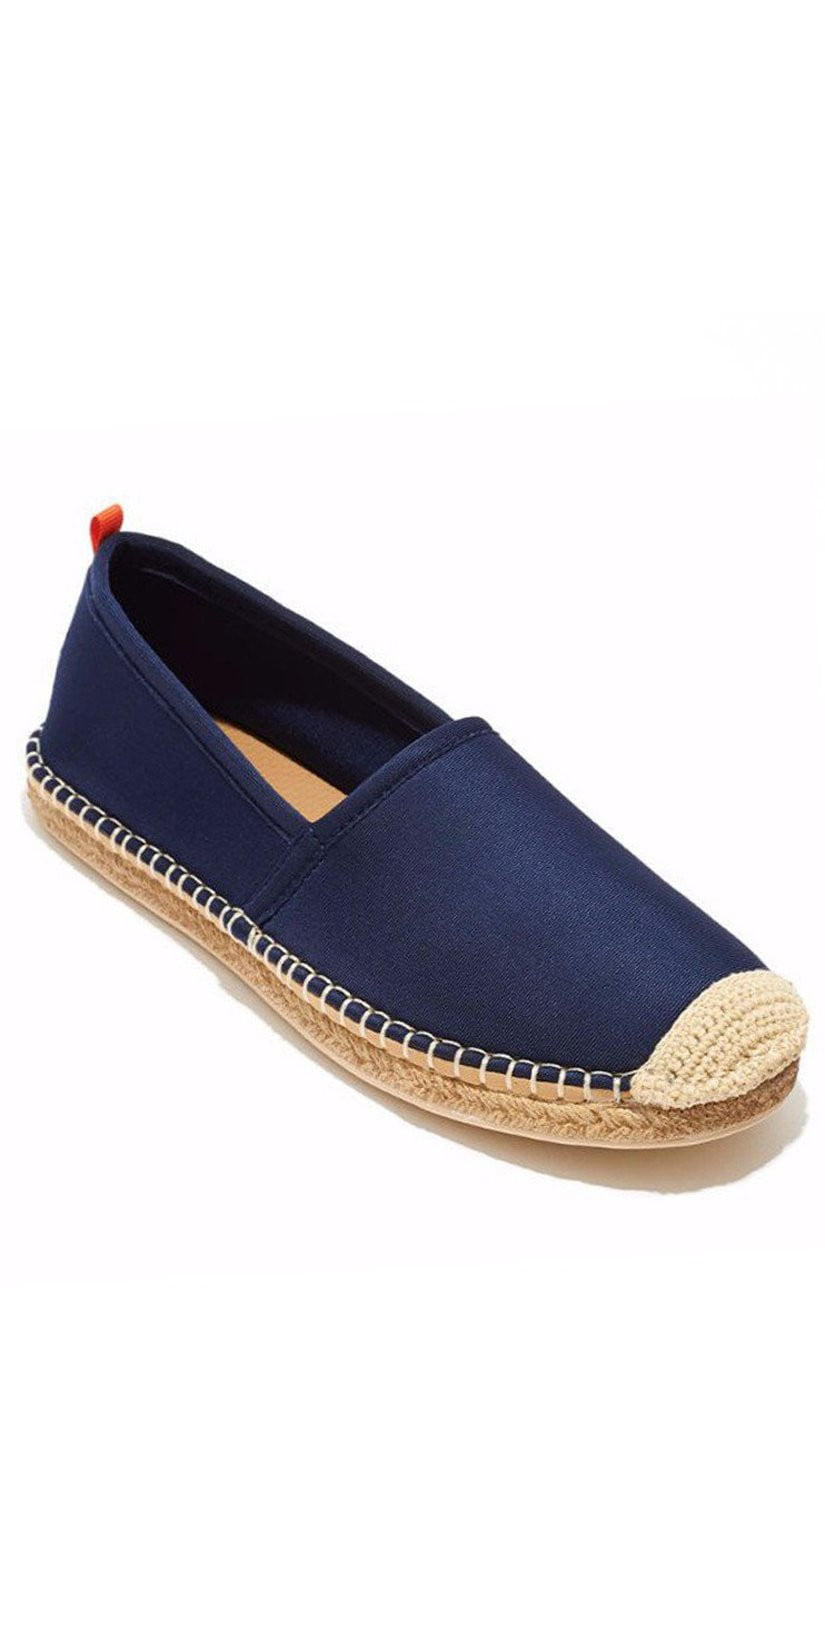 Sea Star Beachwear Ladies Beachcomber Espadrille in Dark Navy: